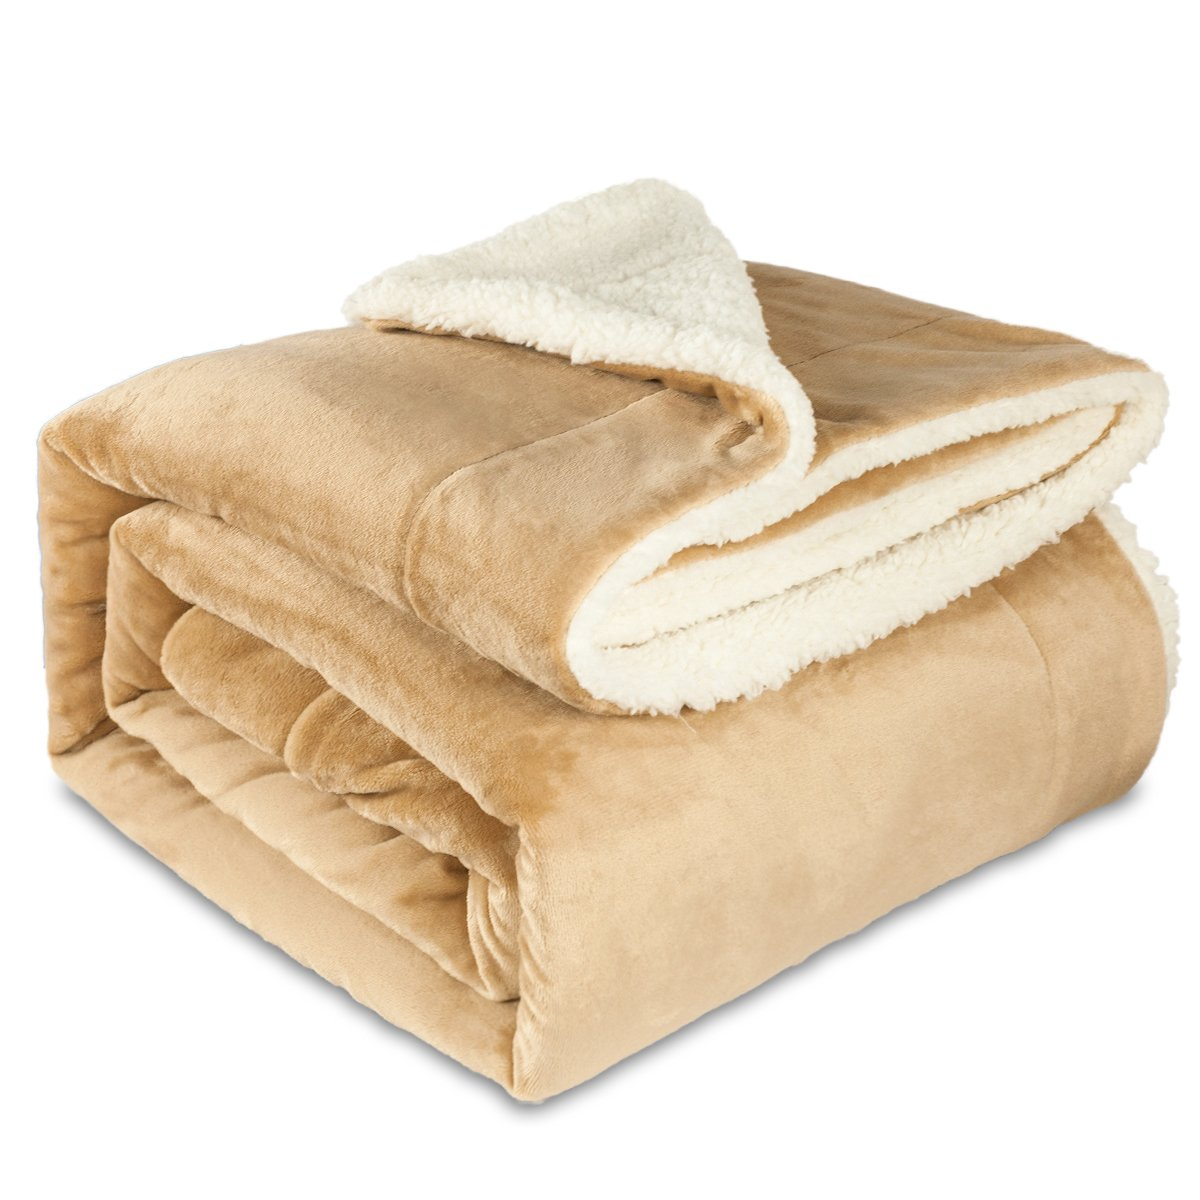 Maicico Sherpa Flannel Soft Reversible Plush Throw Blanket Warm Lightweight Blanket for Bed, Couch/Sofa (Camel, 60''×80'')